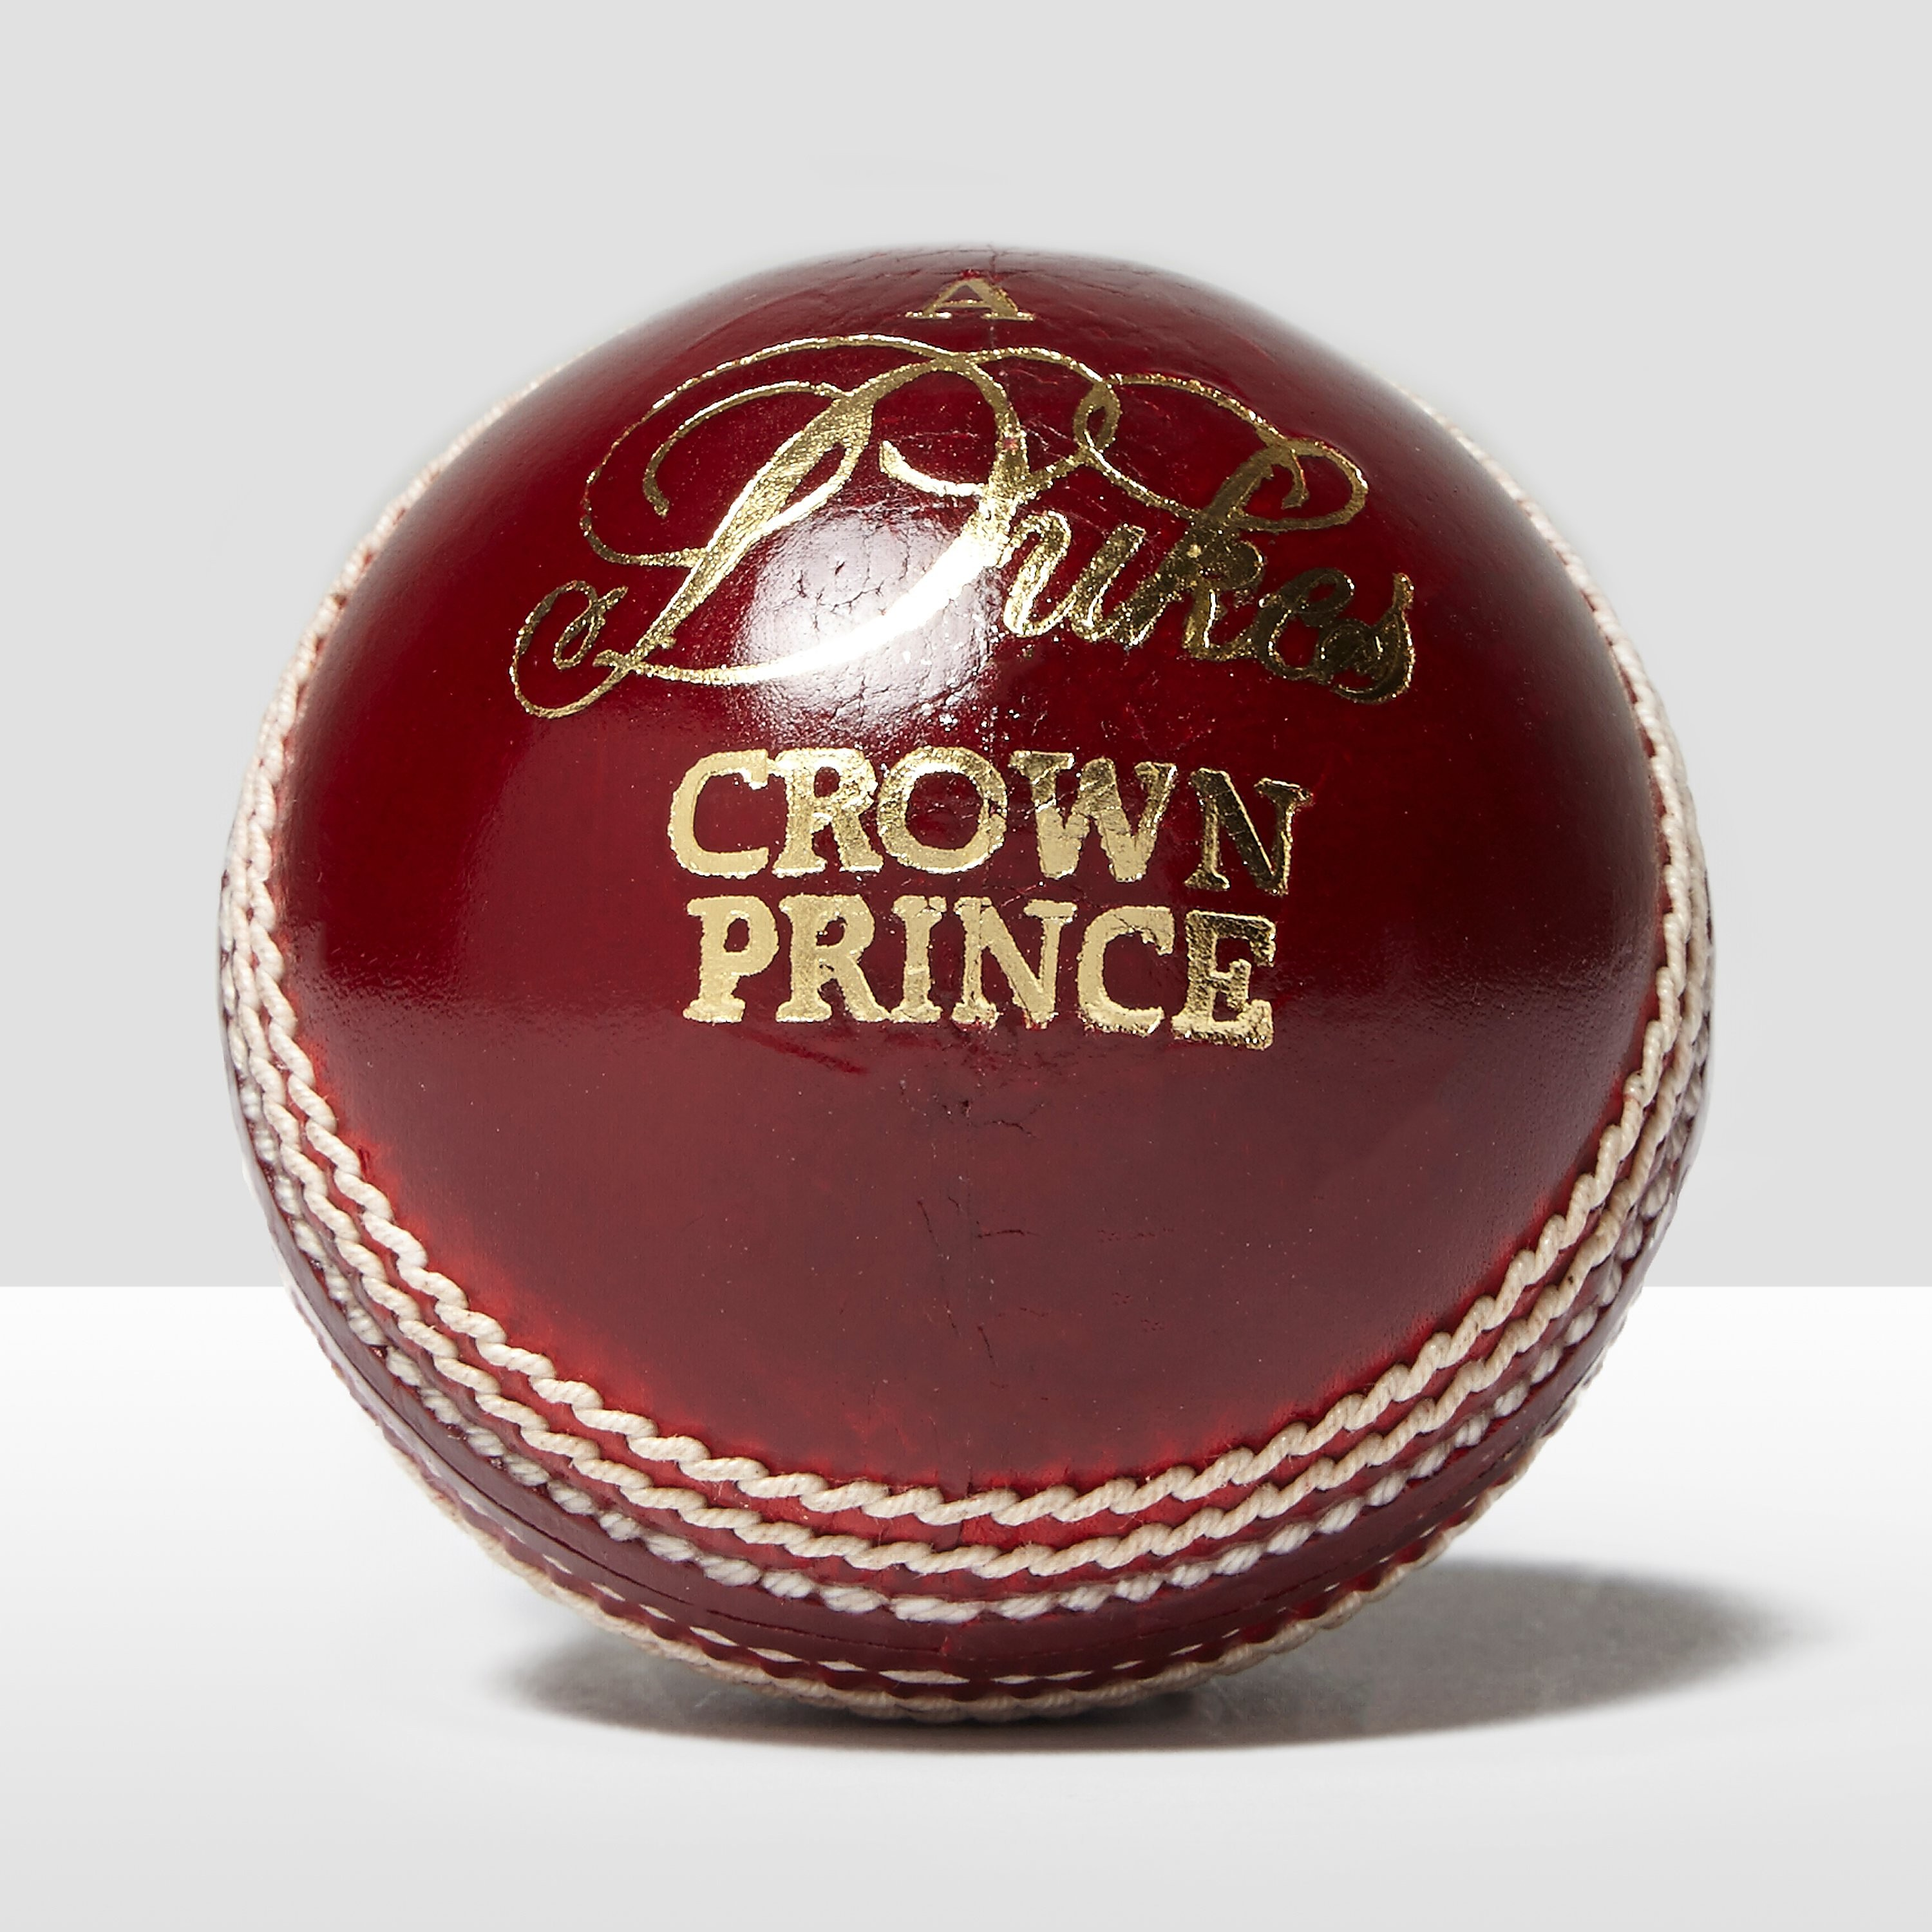 Dukes Crown Prince Cricket Ball